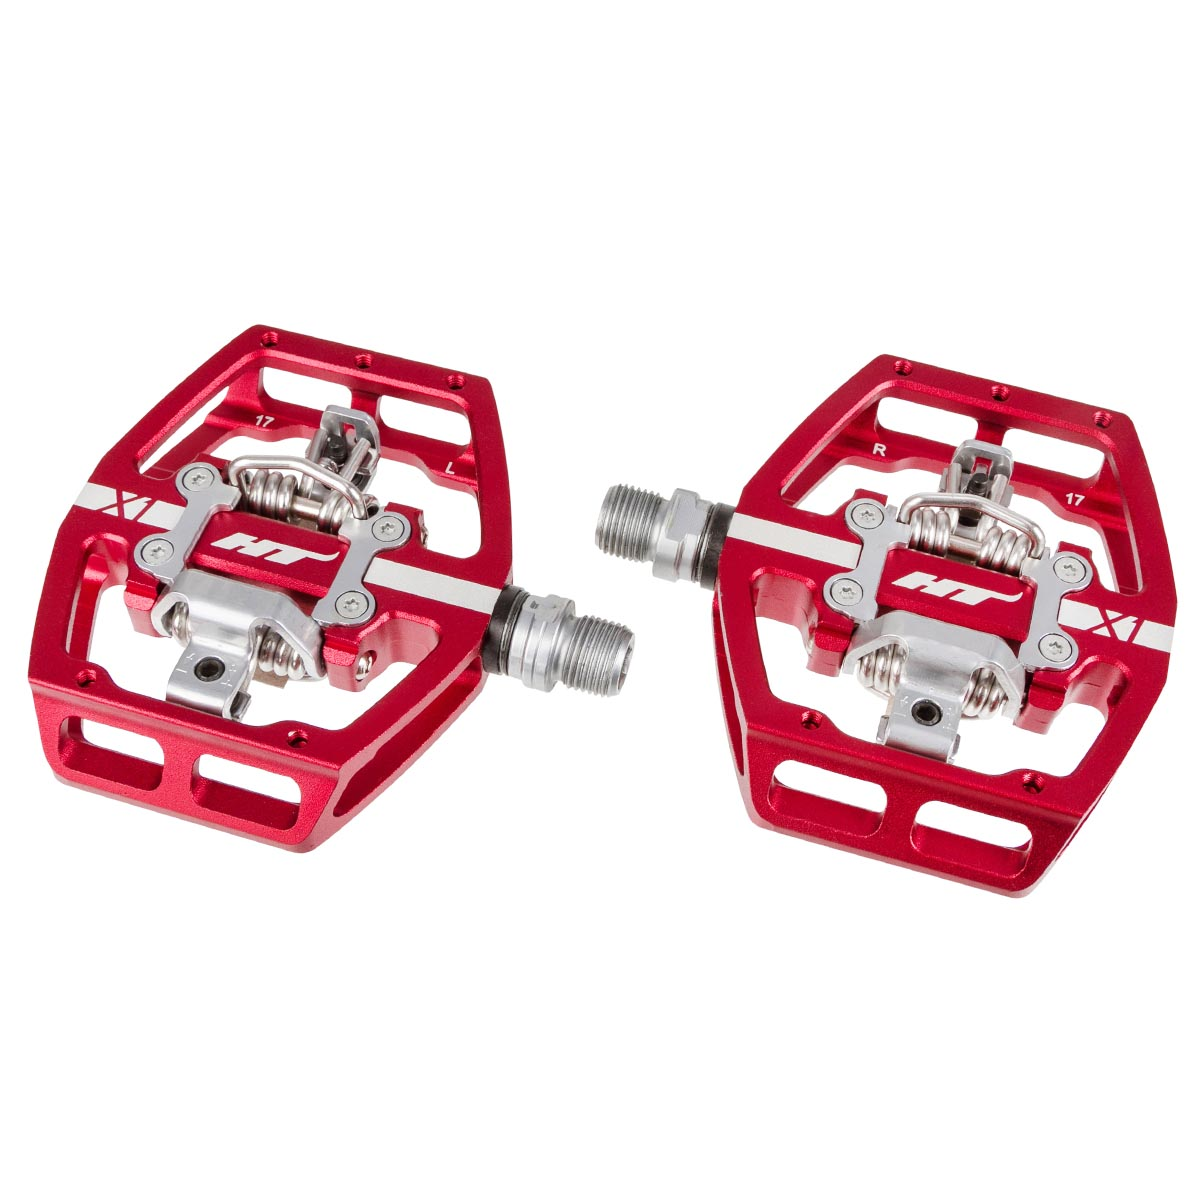 HT Components Klickpedale X1 Rot